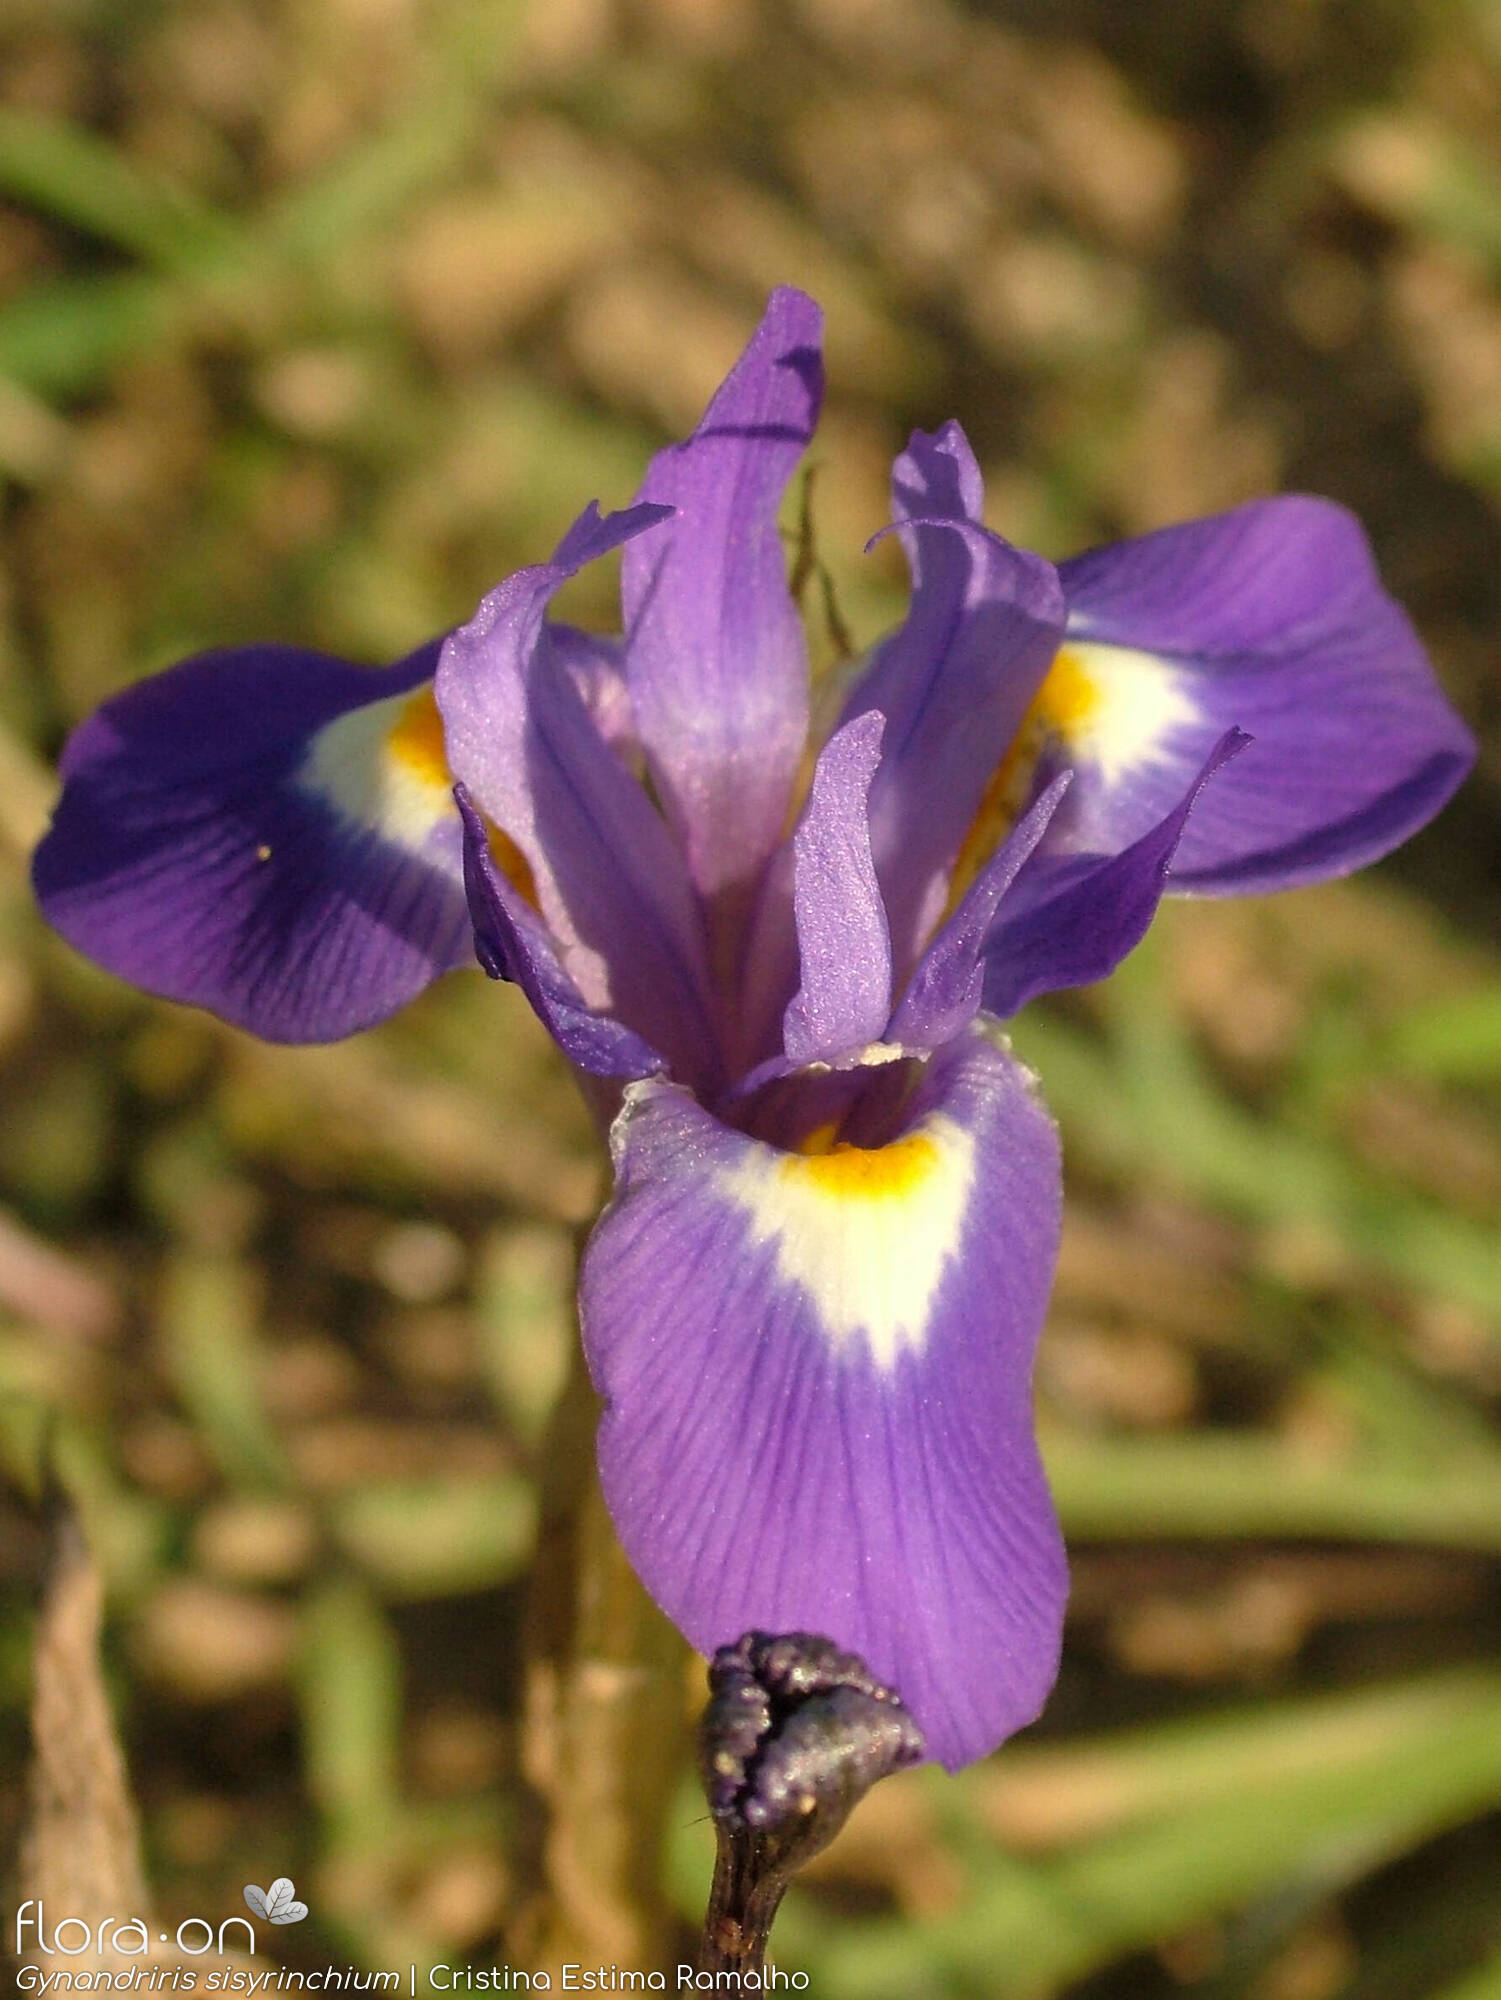 Gynandriris sisyrinchium - Flor (close-up) | Cristina Estima Ramalho; CC BY-NC 4.0